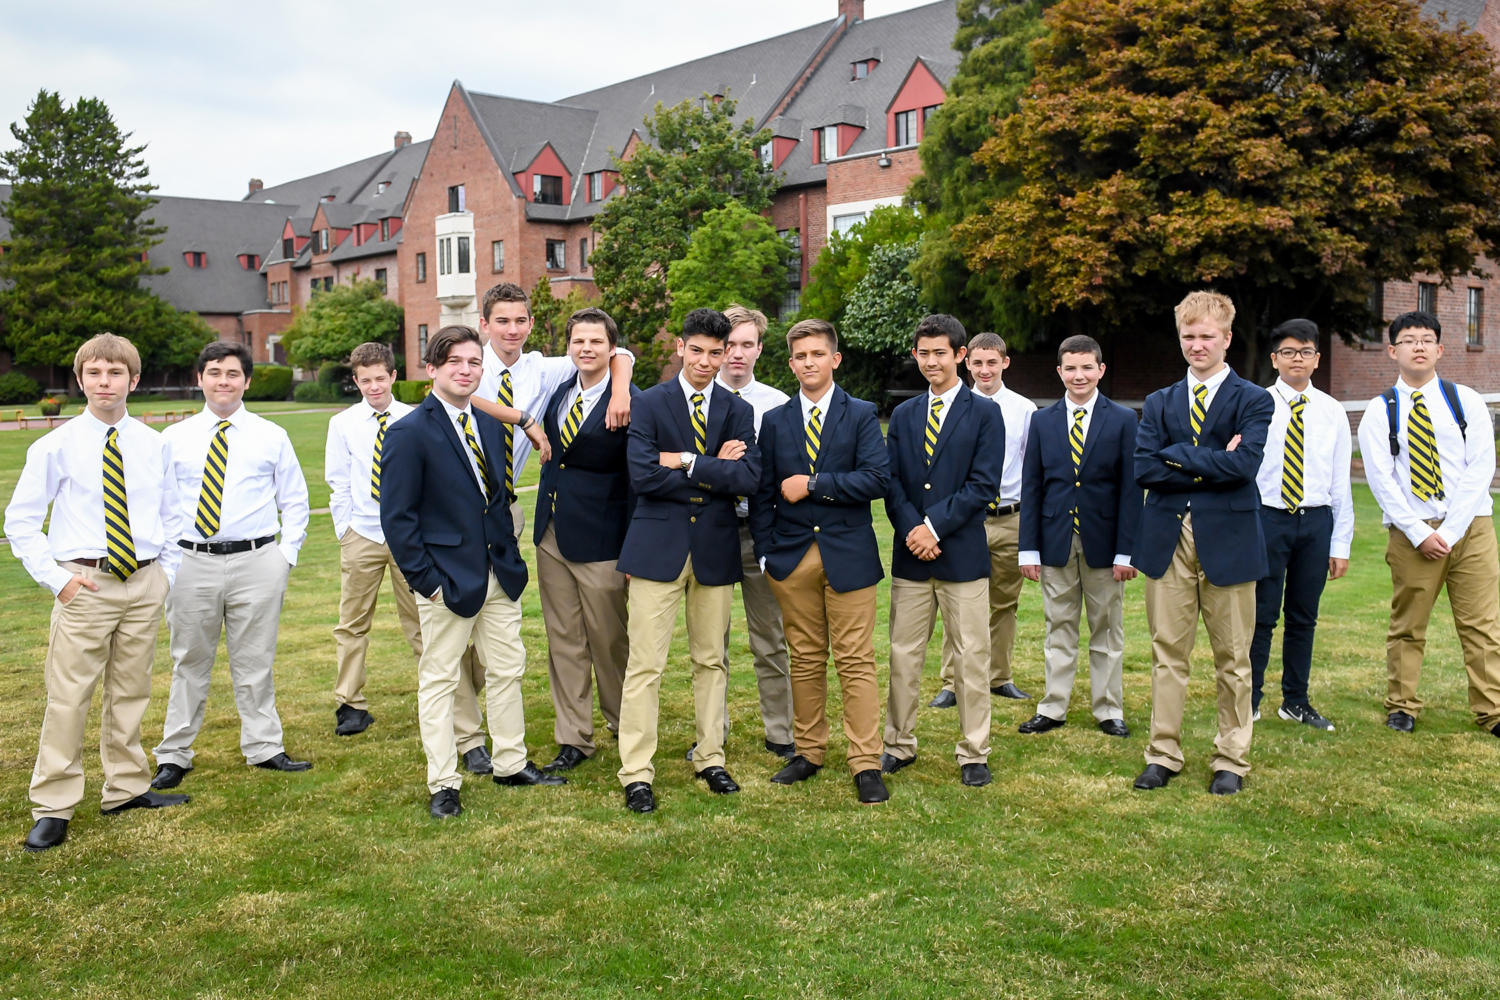 The Upper School boys stand at the site of where their new school will be built. Photo courtesy Oona Copperhill